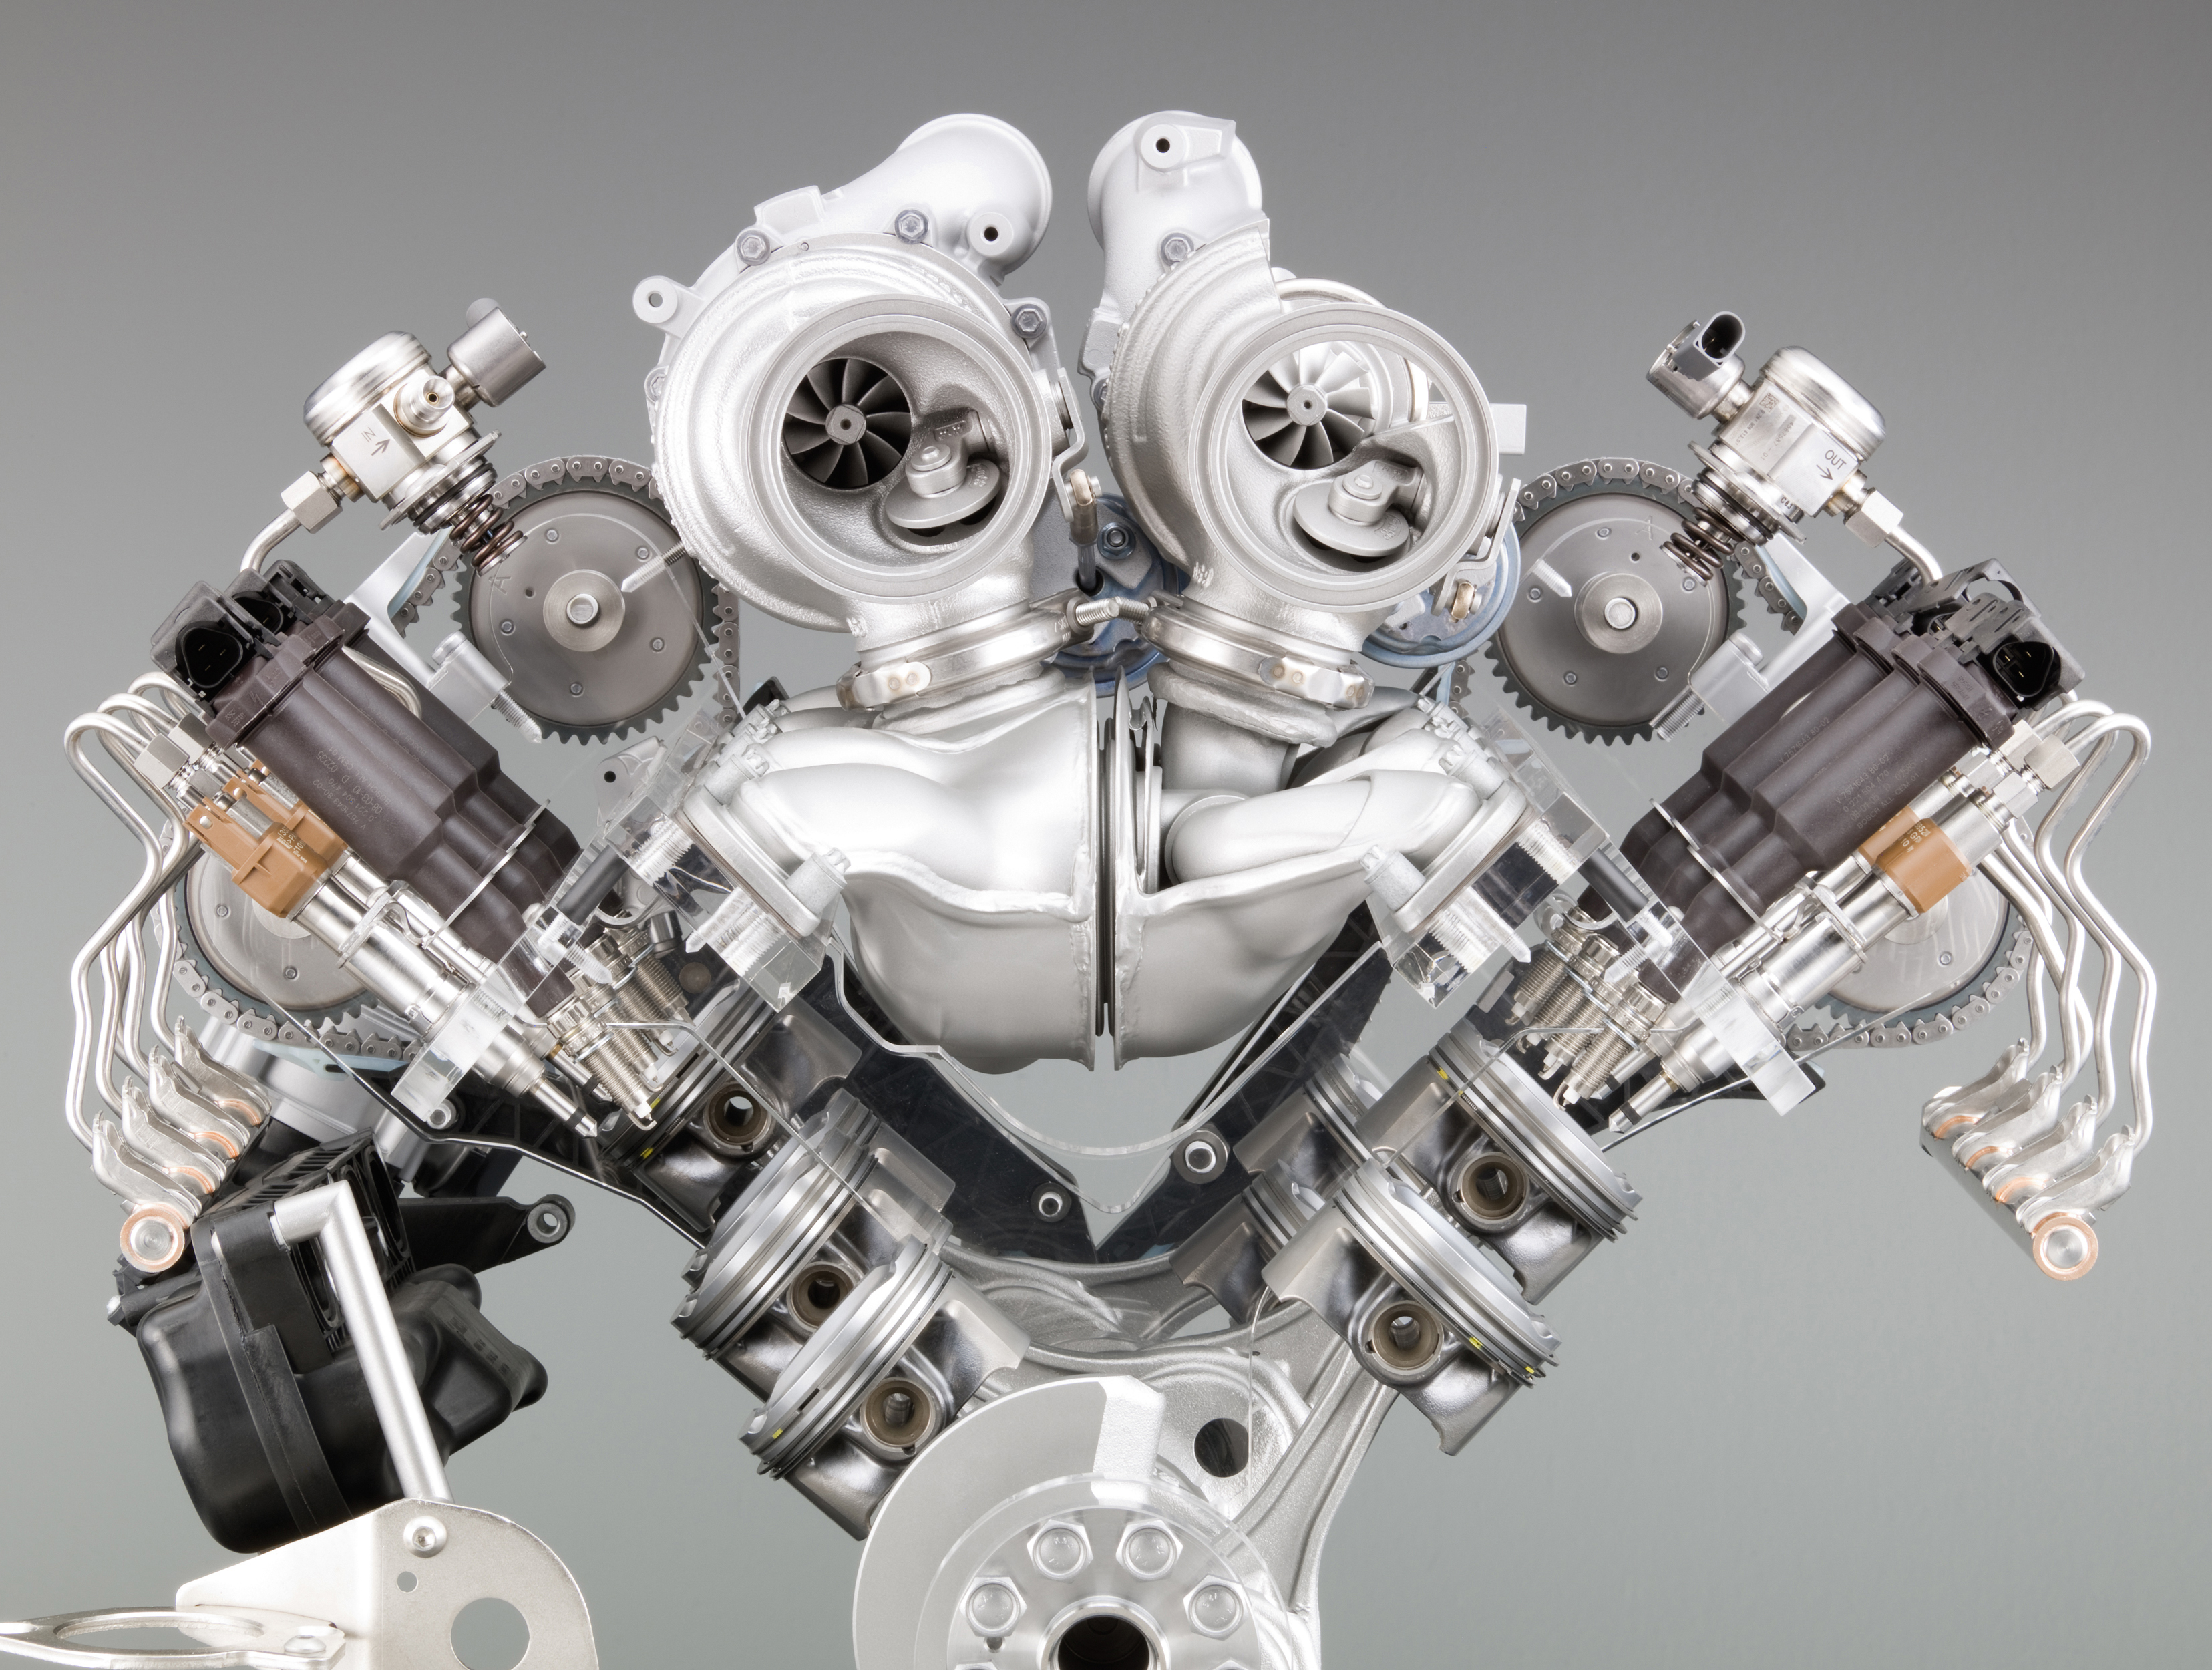 Engine Pictures BMW M5 F10 Concept!-p90045746.jpg